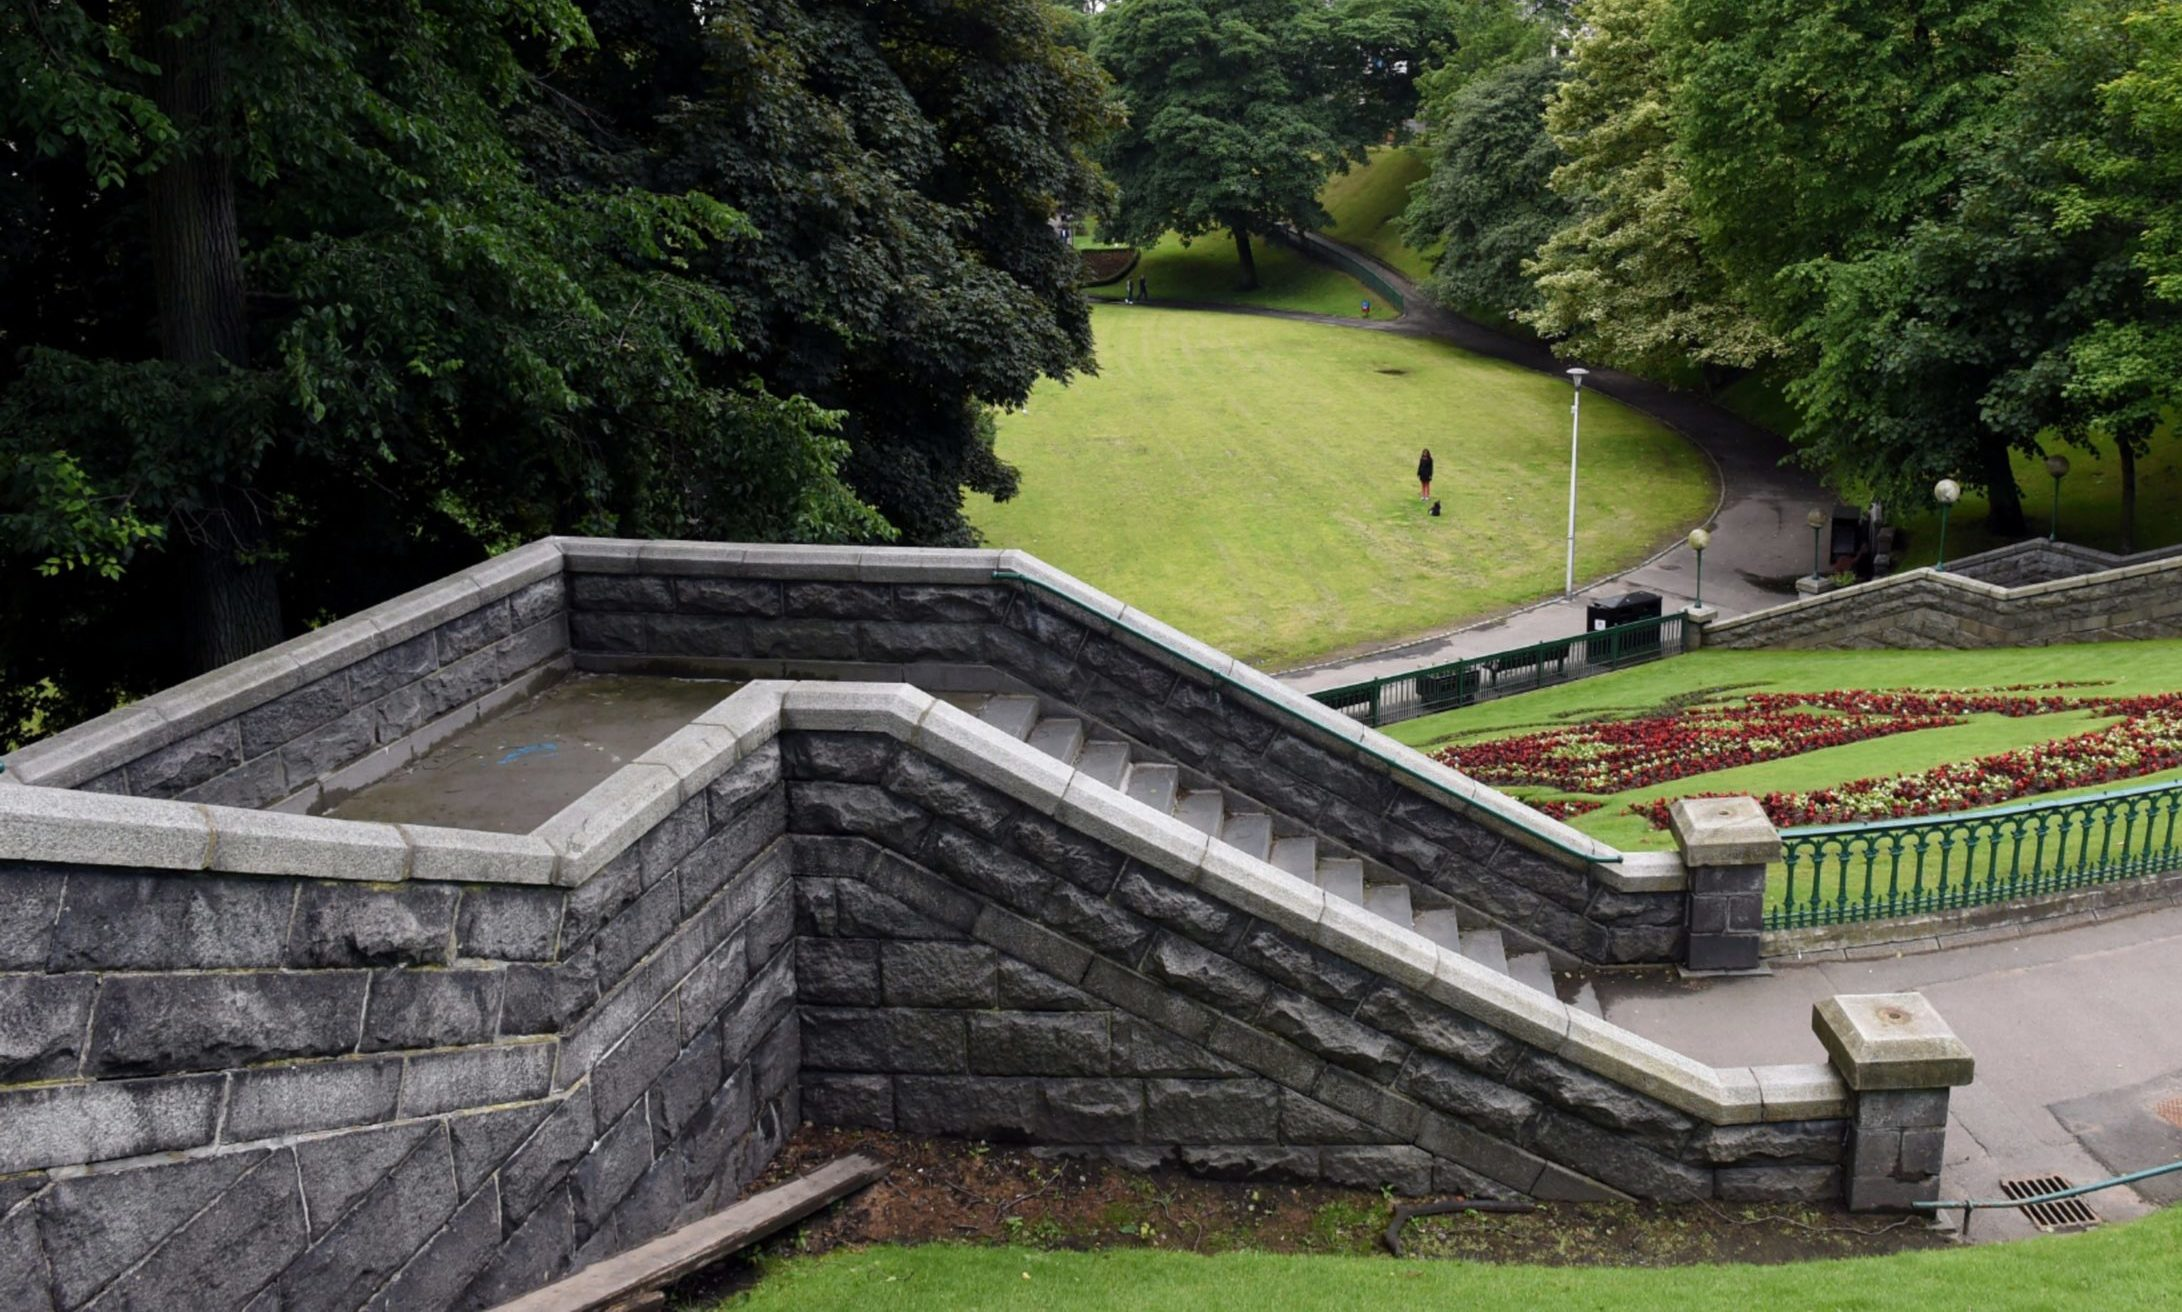 It is thought the granite found in an Aberdeen garden could be from the staircase leading into Union Terrace Gardens, photographed in 2017.